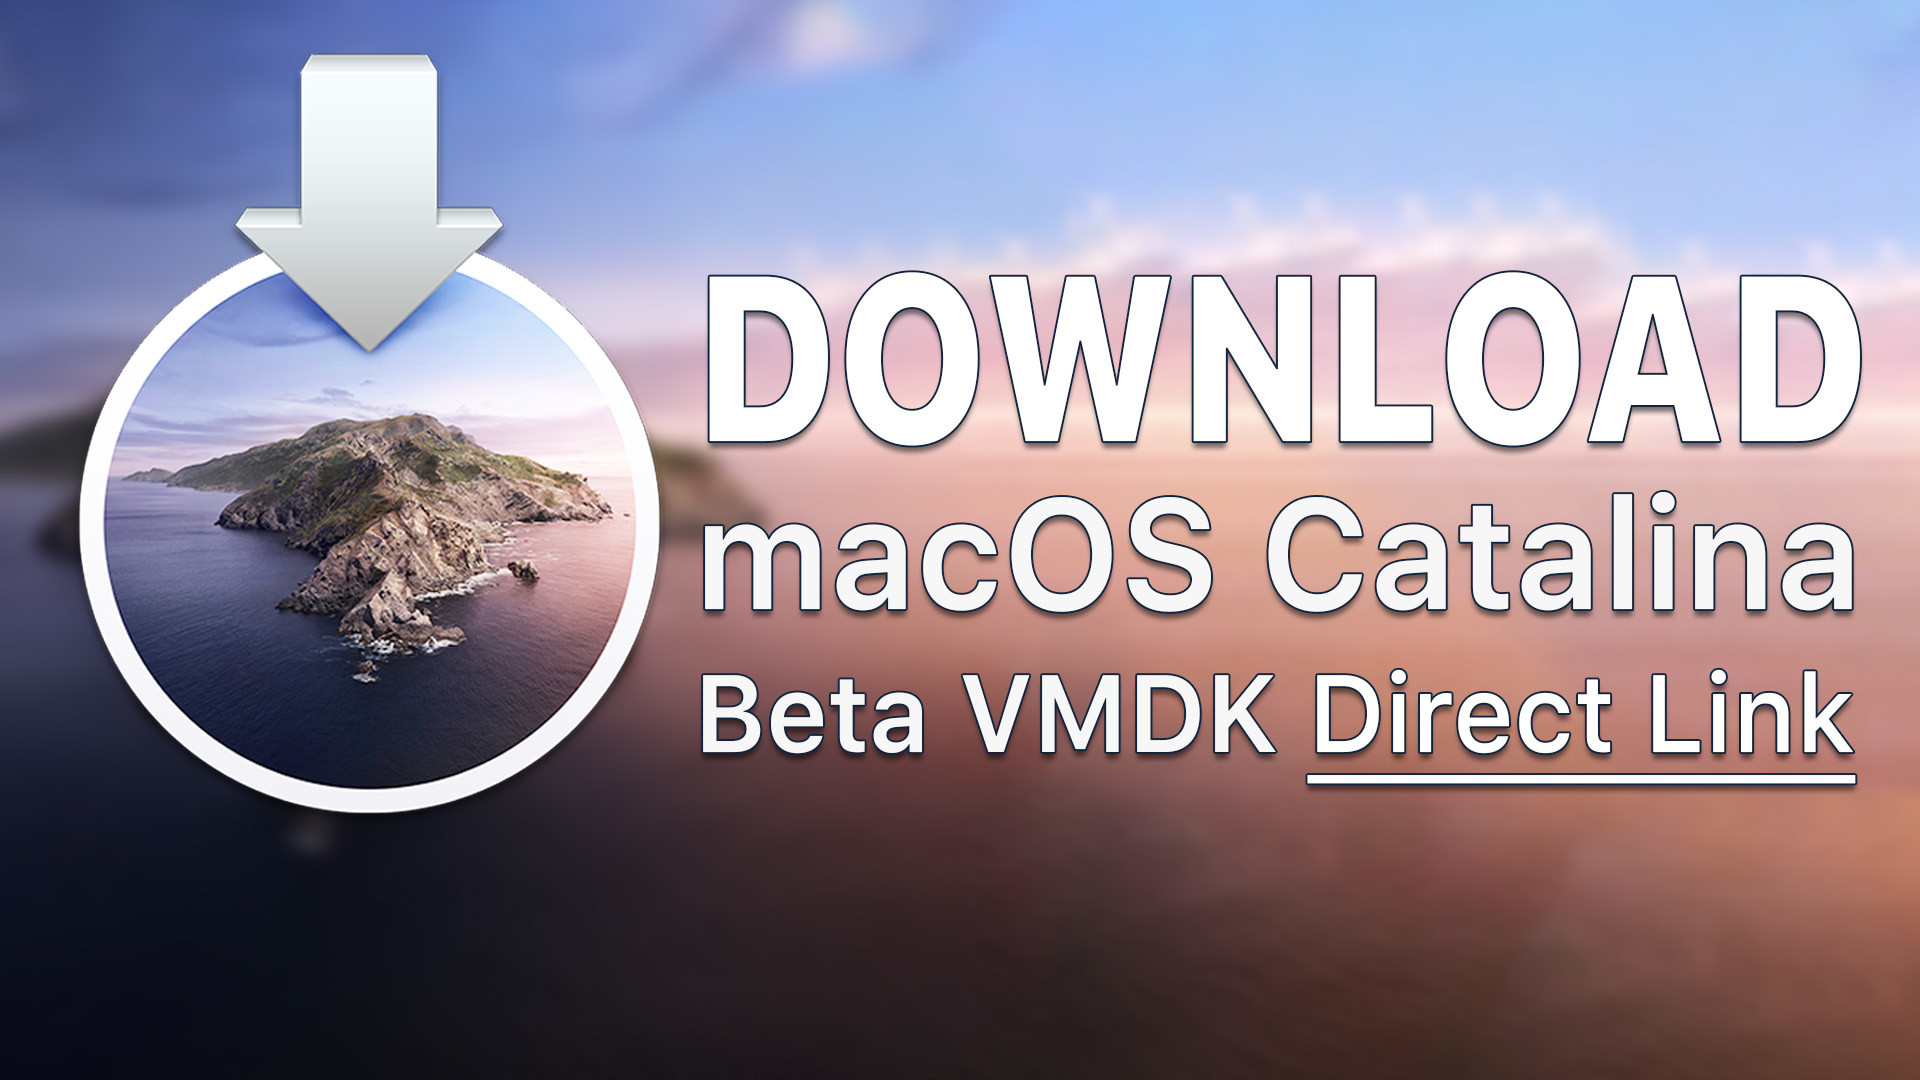 Download macOS Catalina Image for VMware & VirtualBox - wikigain